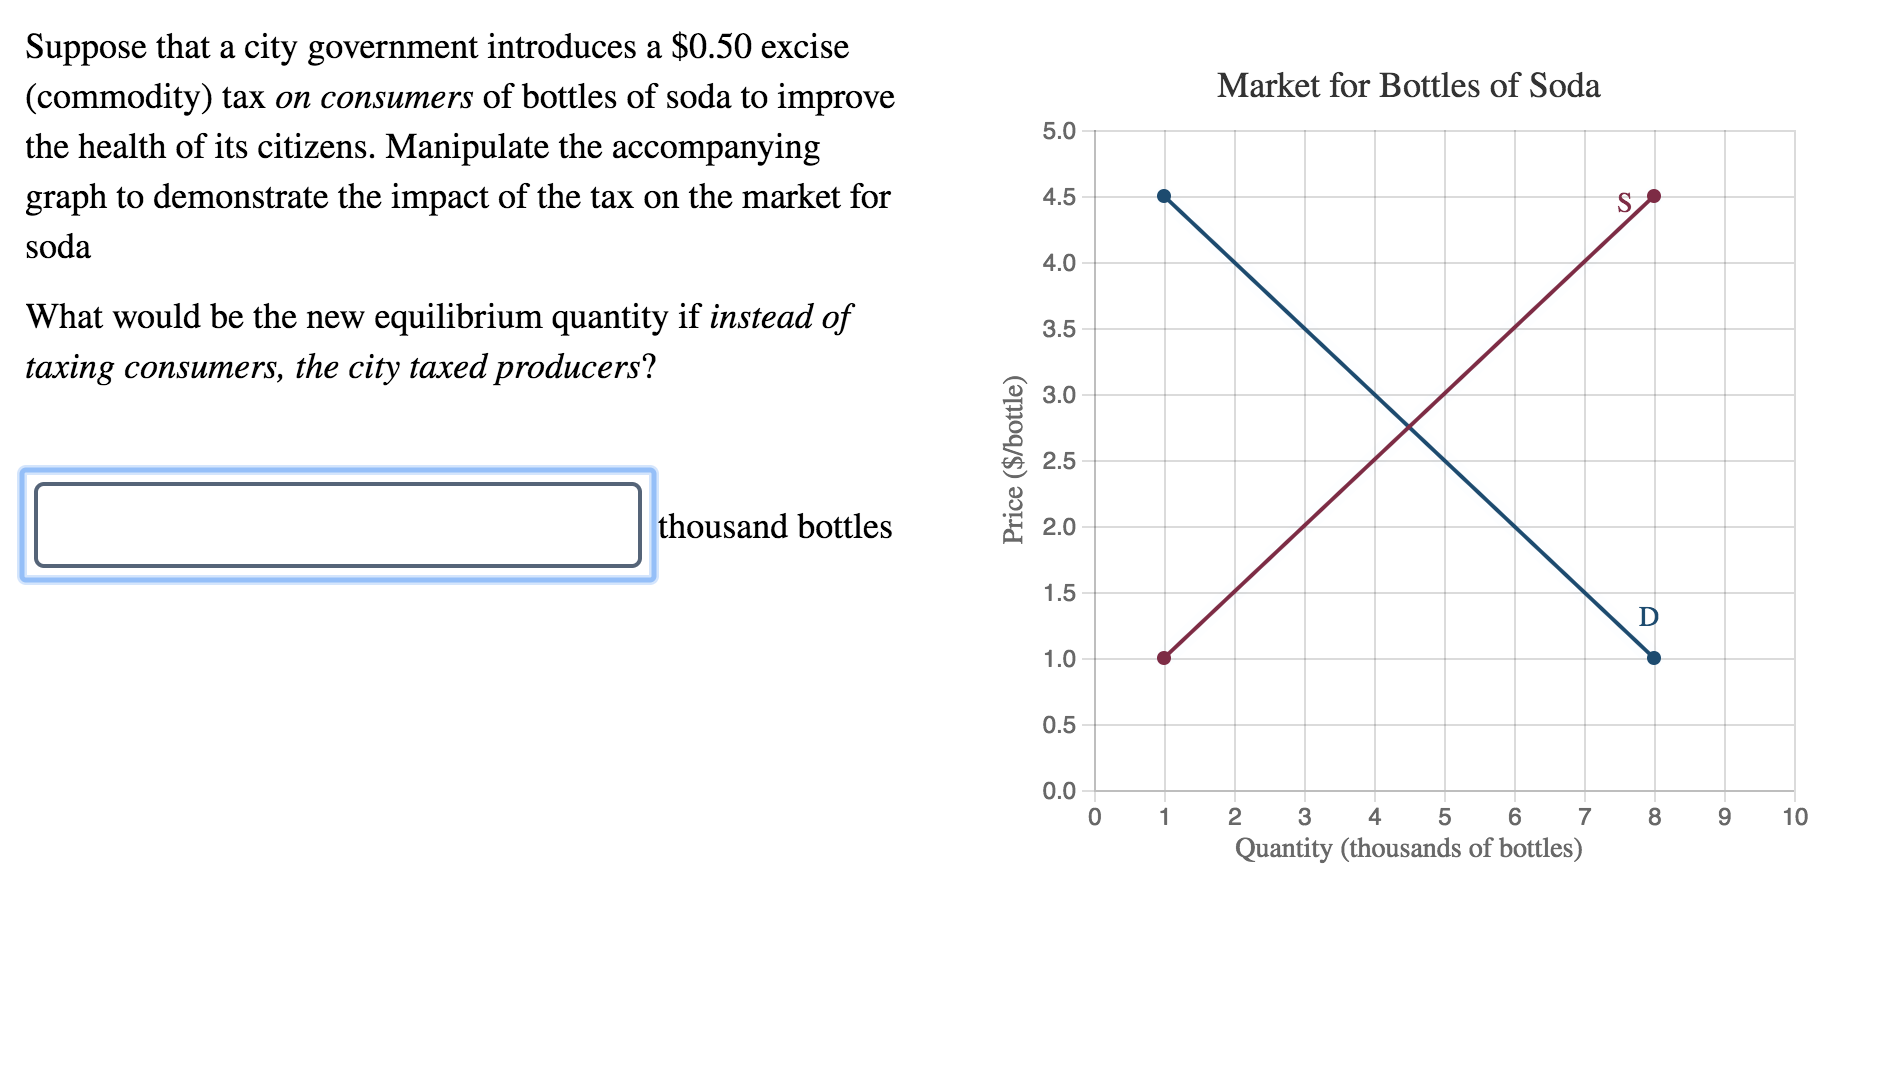 Suppose that a city government introduces a $0.50 excise (commodity) tax on consumers of bottles of soda to improve the health of its citizens. Manipulate the accompanying graph to demonstrate the impact of the tax on the market for soda Market for Bottles of Soda 5.0 4.5 4.0 What would be the new equilibrium quantity if instead of taxing consumers, the city taxed producers? 3.5 3.0 2.5 thousand bottle:s 2.0 0.5 0.0 0 2 34 Quantity (thousands of bottles) 5 8 9 10